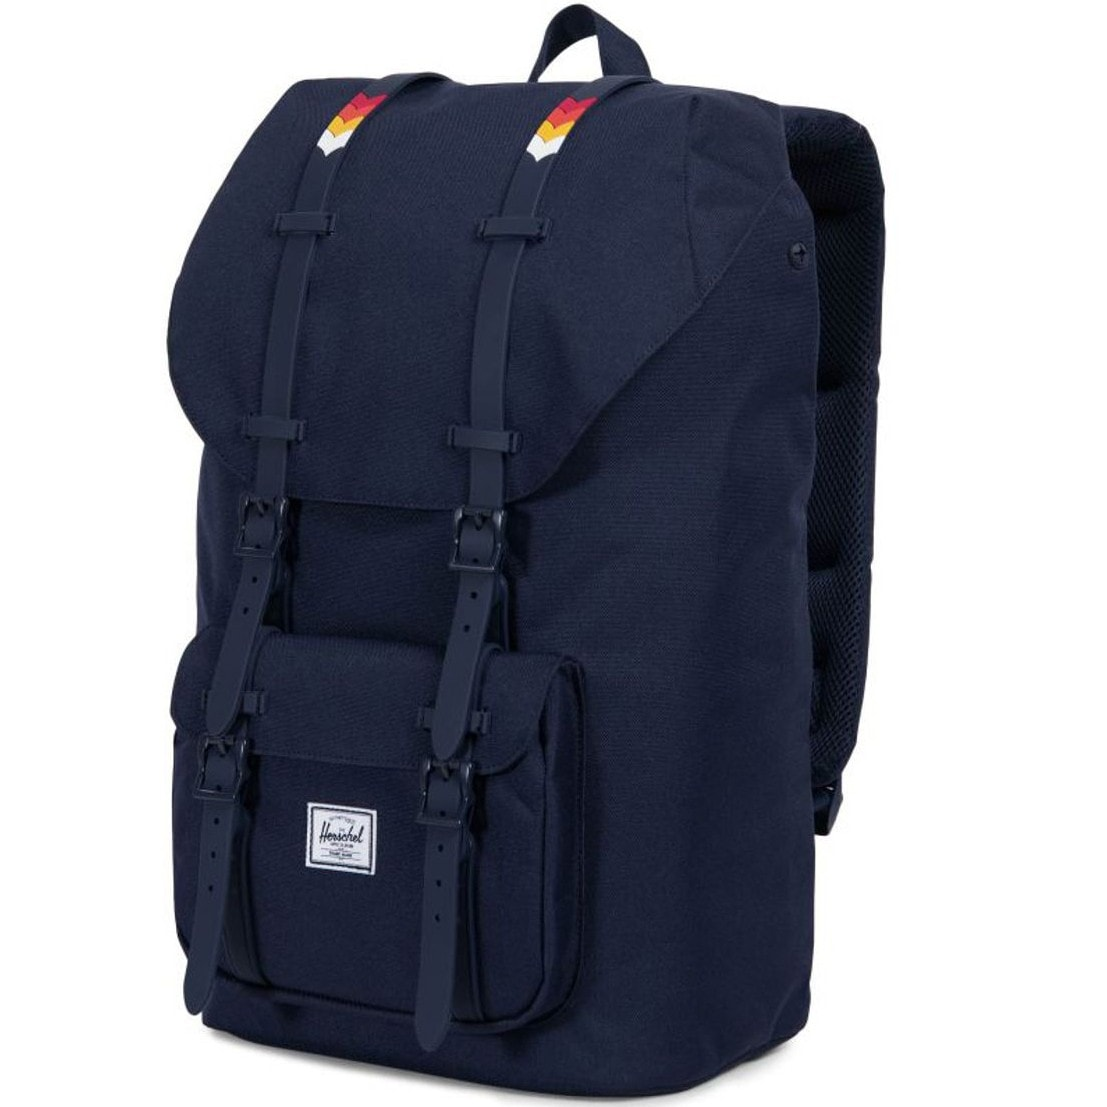 Рюкзак HERSCHEL LITTLE AMERICA MID-VOLUME Peacoat/Rainbow Chevron Rubber, 17L